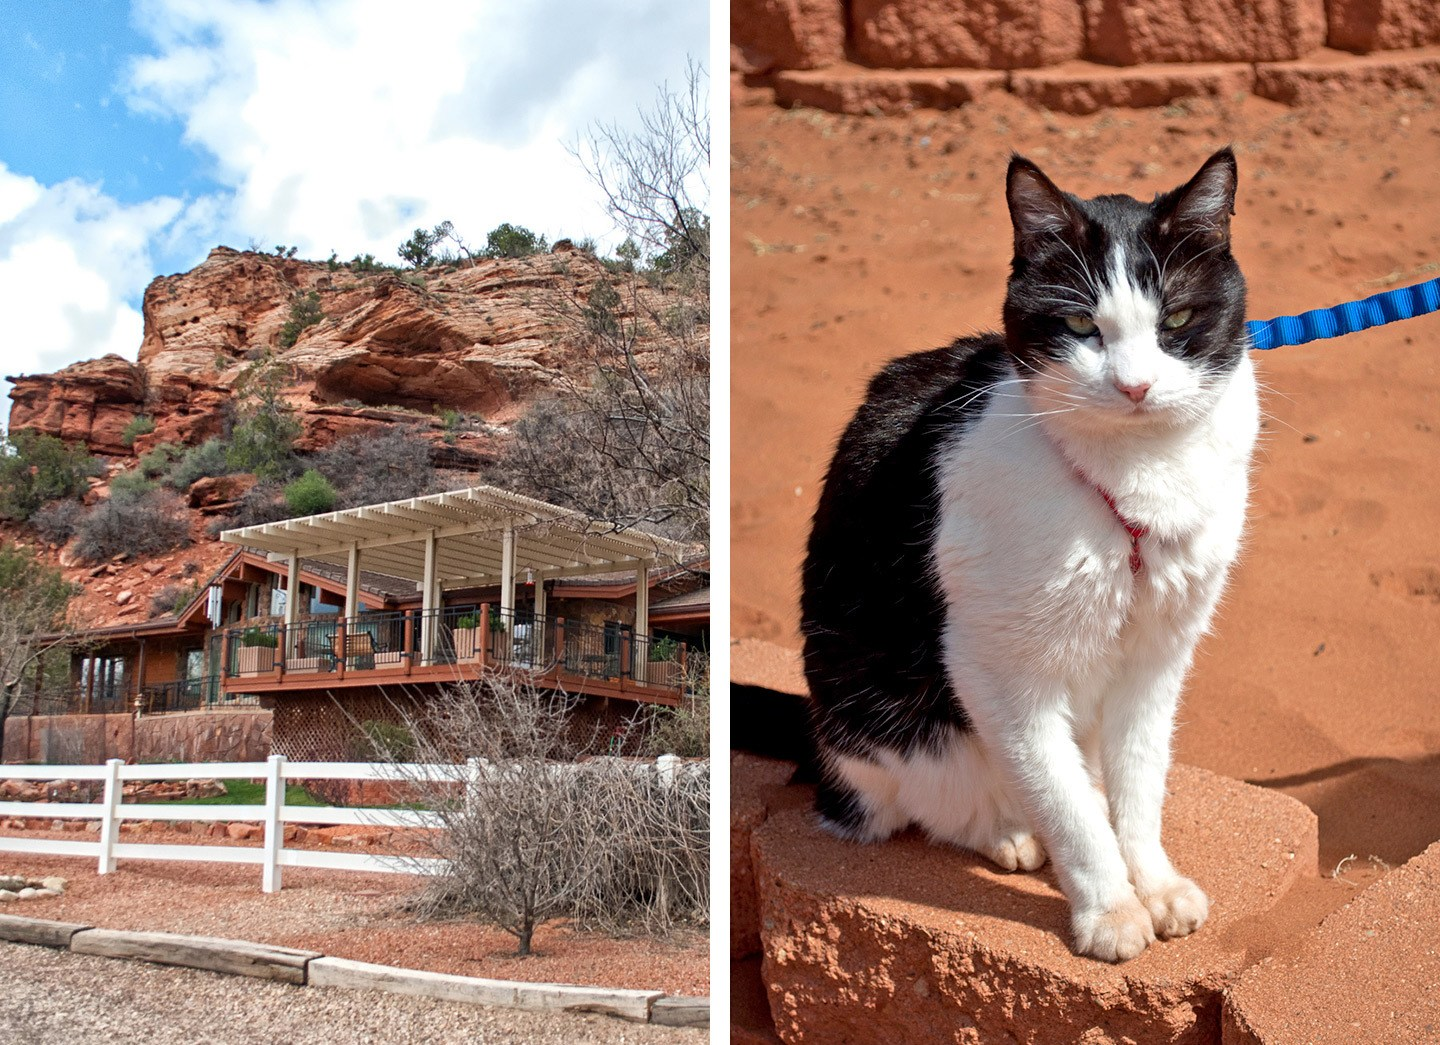 Volunteering at Best Friends Animal Society in Kanab, Utah